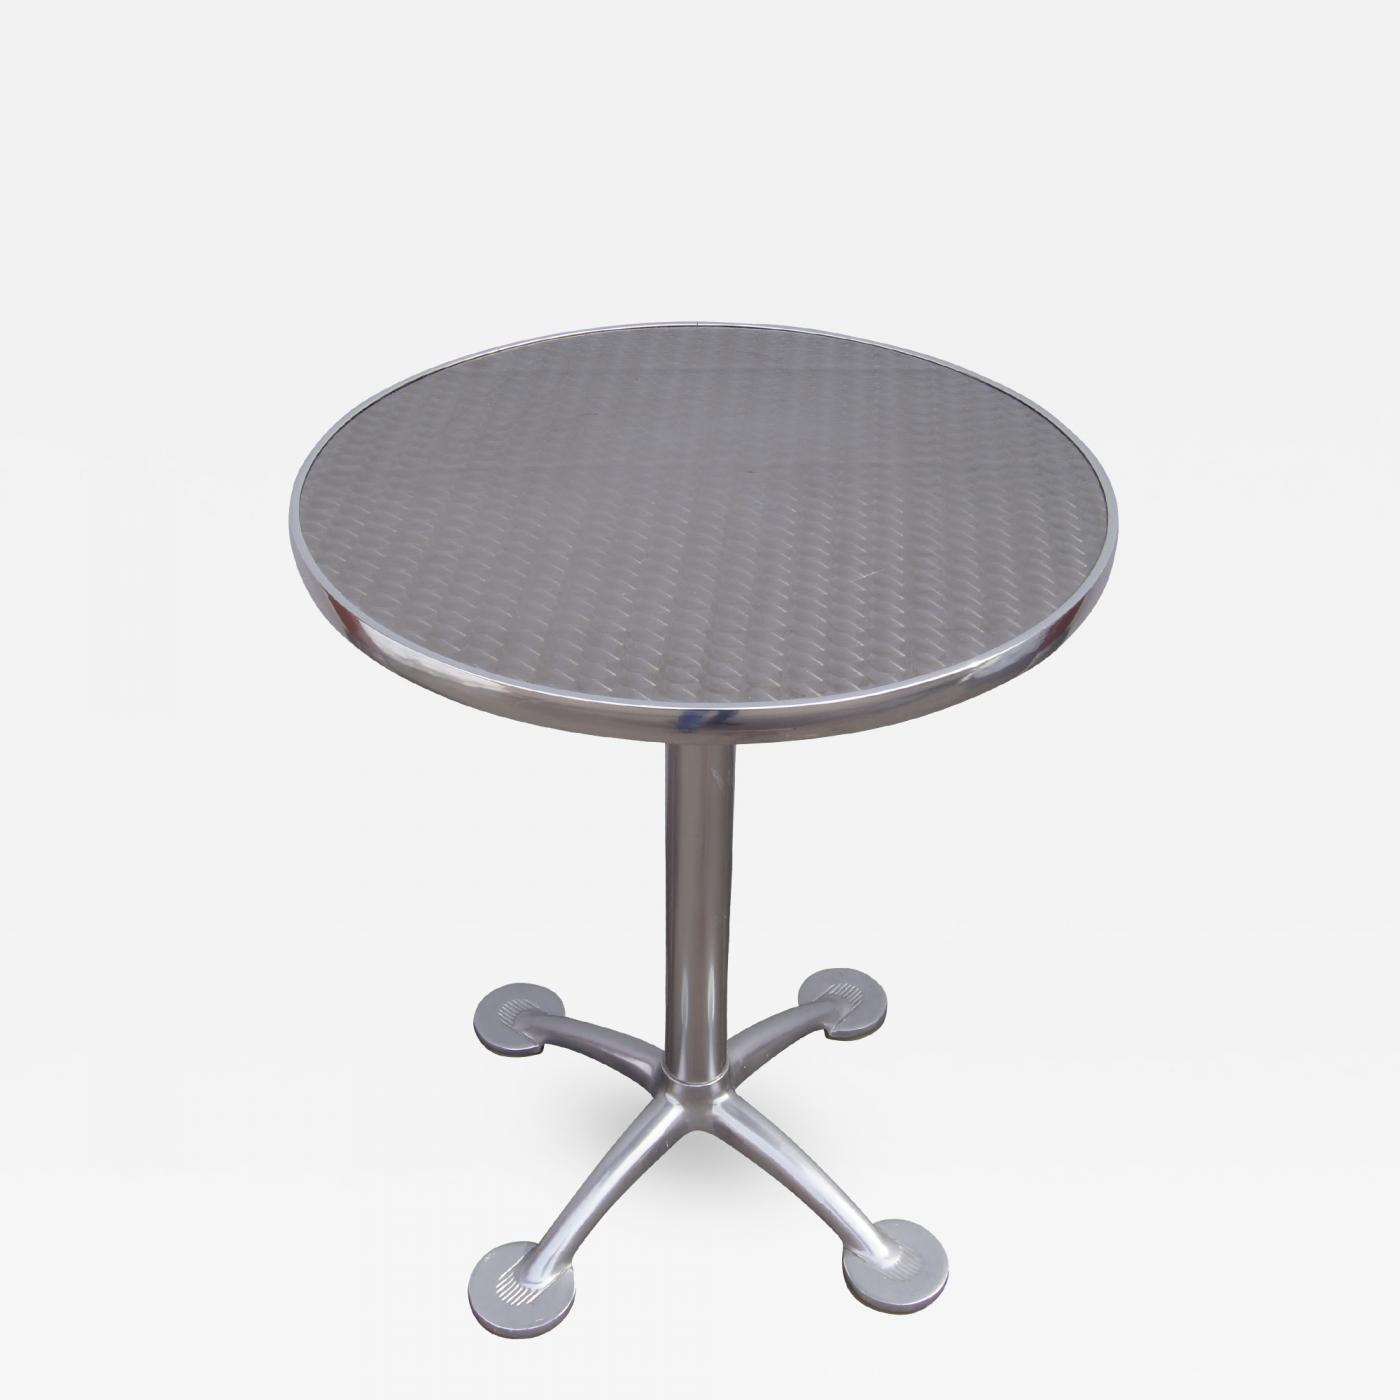 Jorge Pensi - Aluminium and Stainless Steel Pensi Café Table by Jorge Pensi  for Knoll